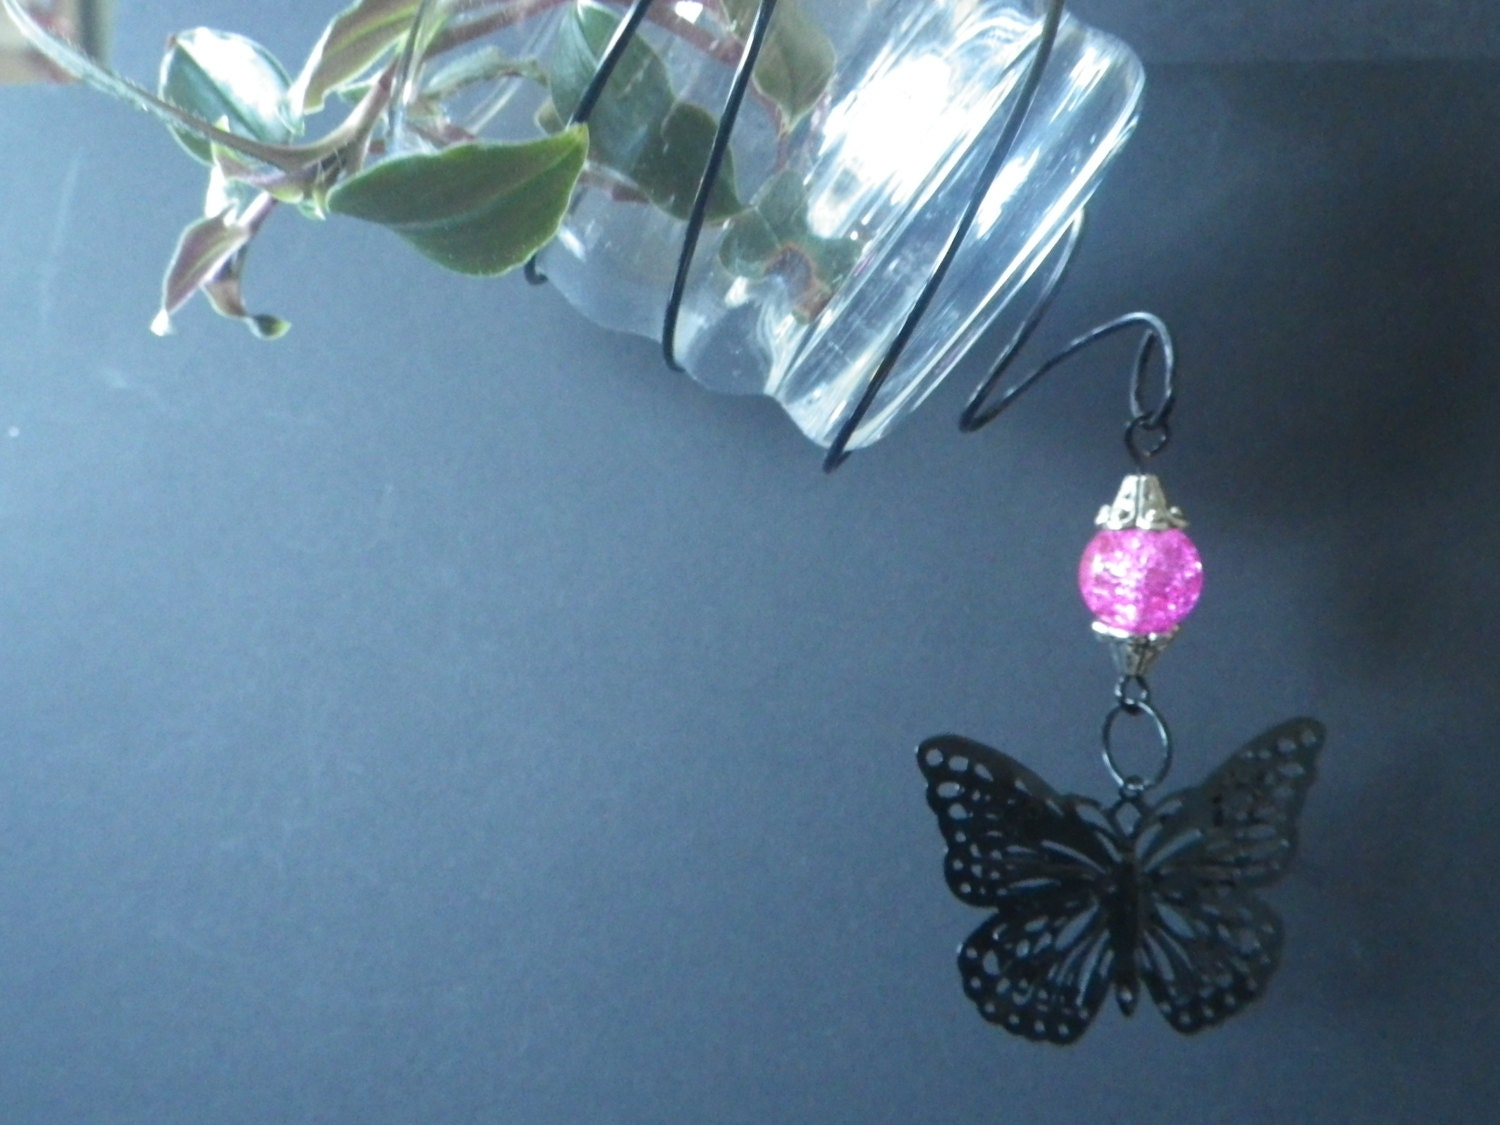 Plant Cutting Rooting Vase- Black Butterfly- Hot Pink- Window or Mirror Hanger- May Day- Mother's Day- Birthday- Gift for Her- CassieVision - CassieVision